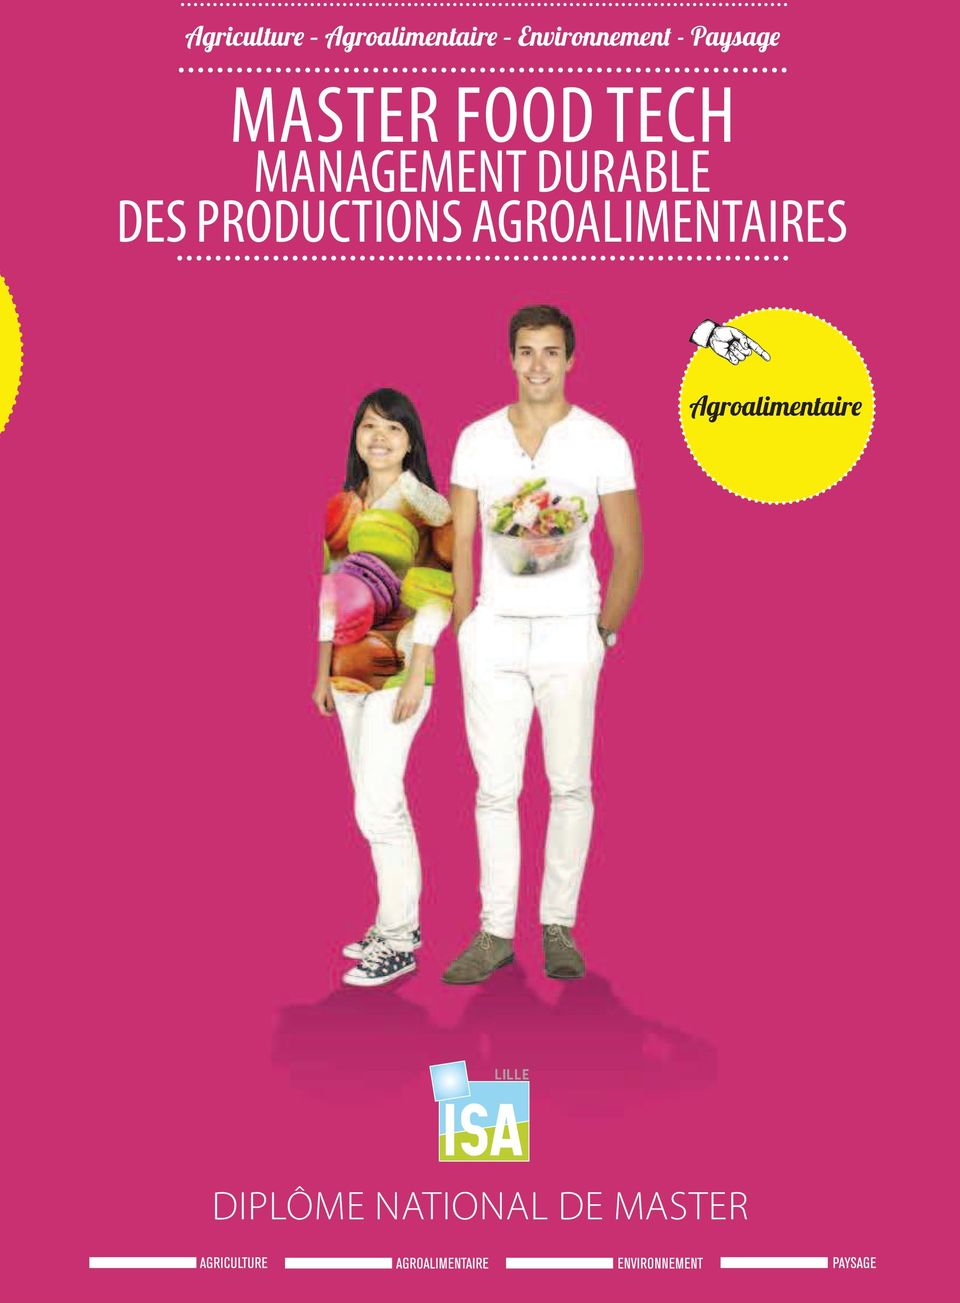 MANAGEMENT DURABLE DES PRODUCTIONS